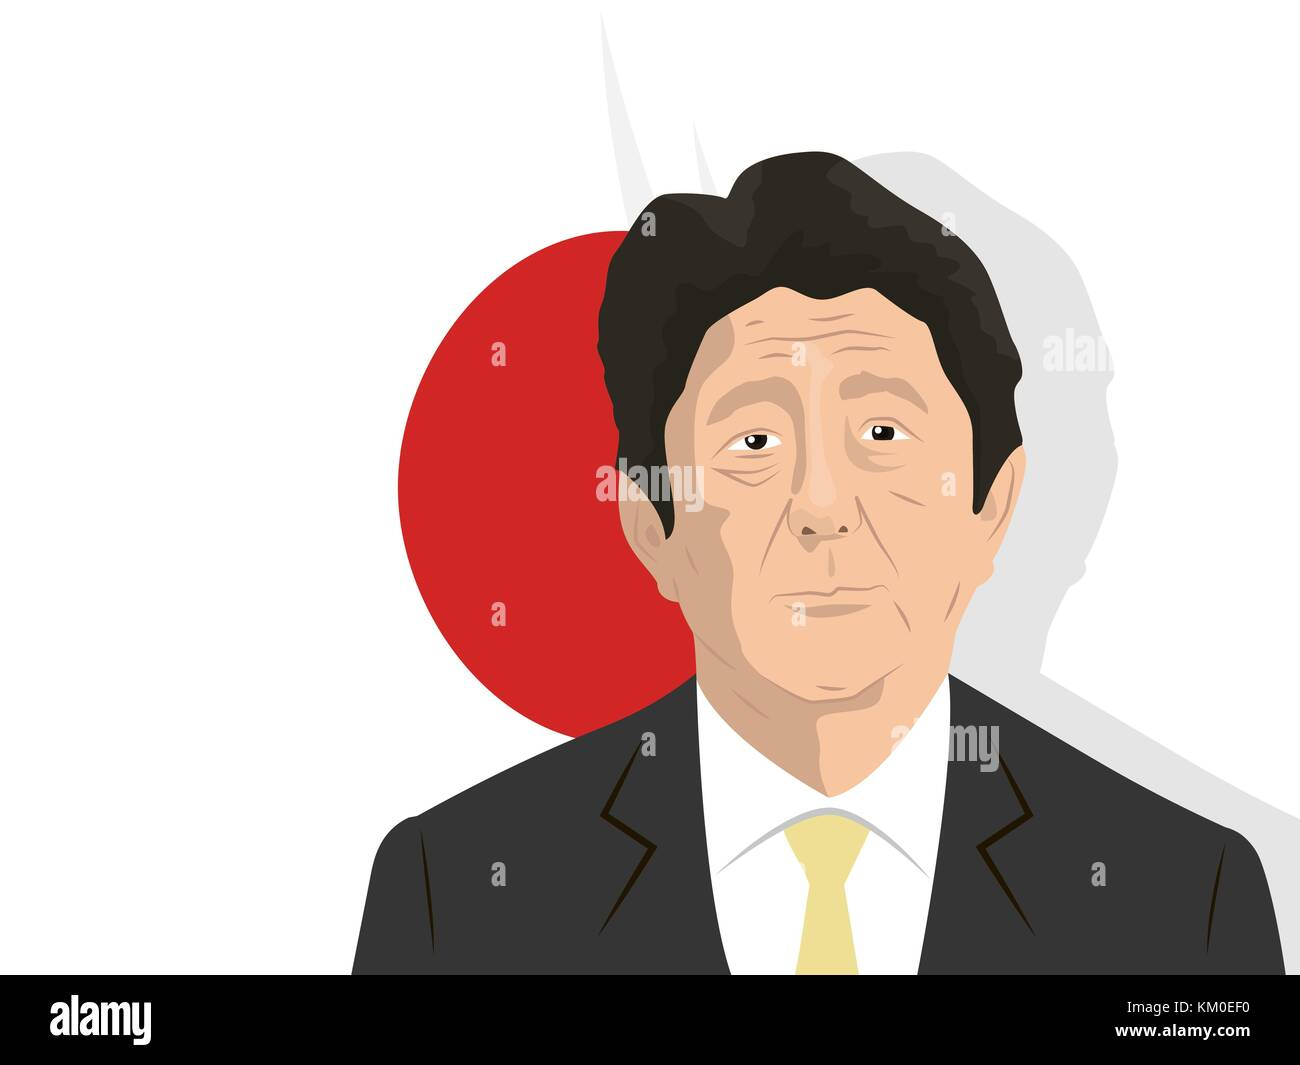 02.12.2017 Editorial illustration of the Prime Minister of Japan Shinzo Abe - Stock Image